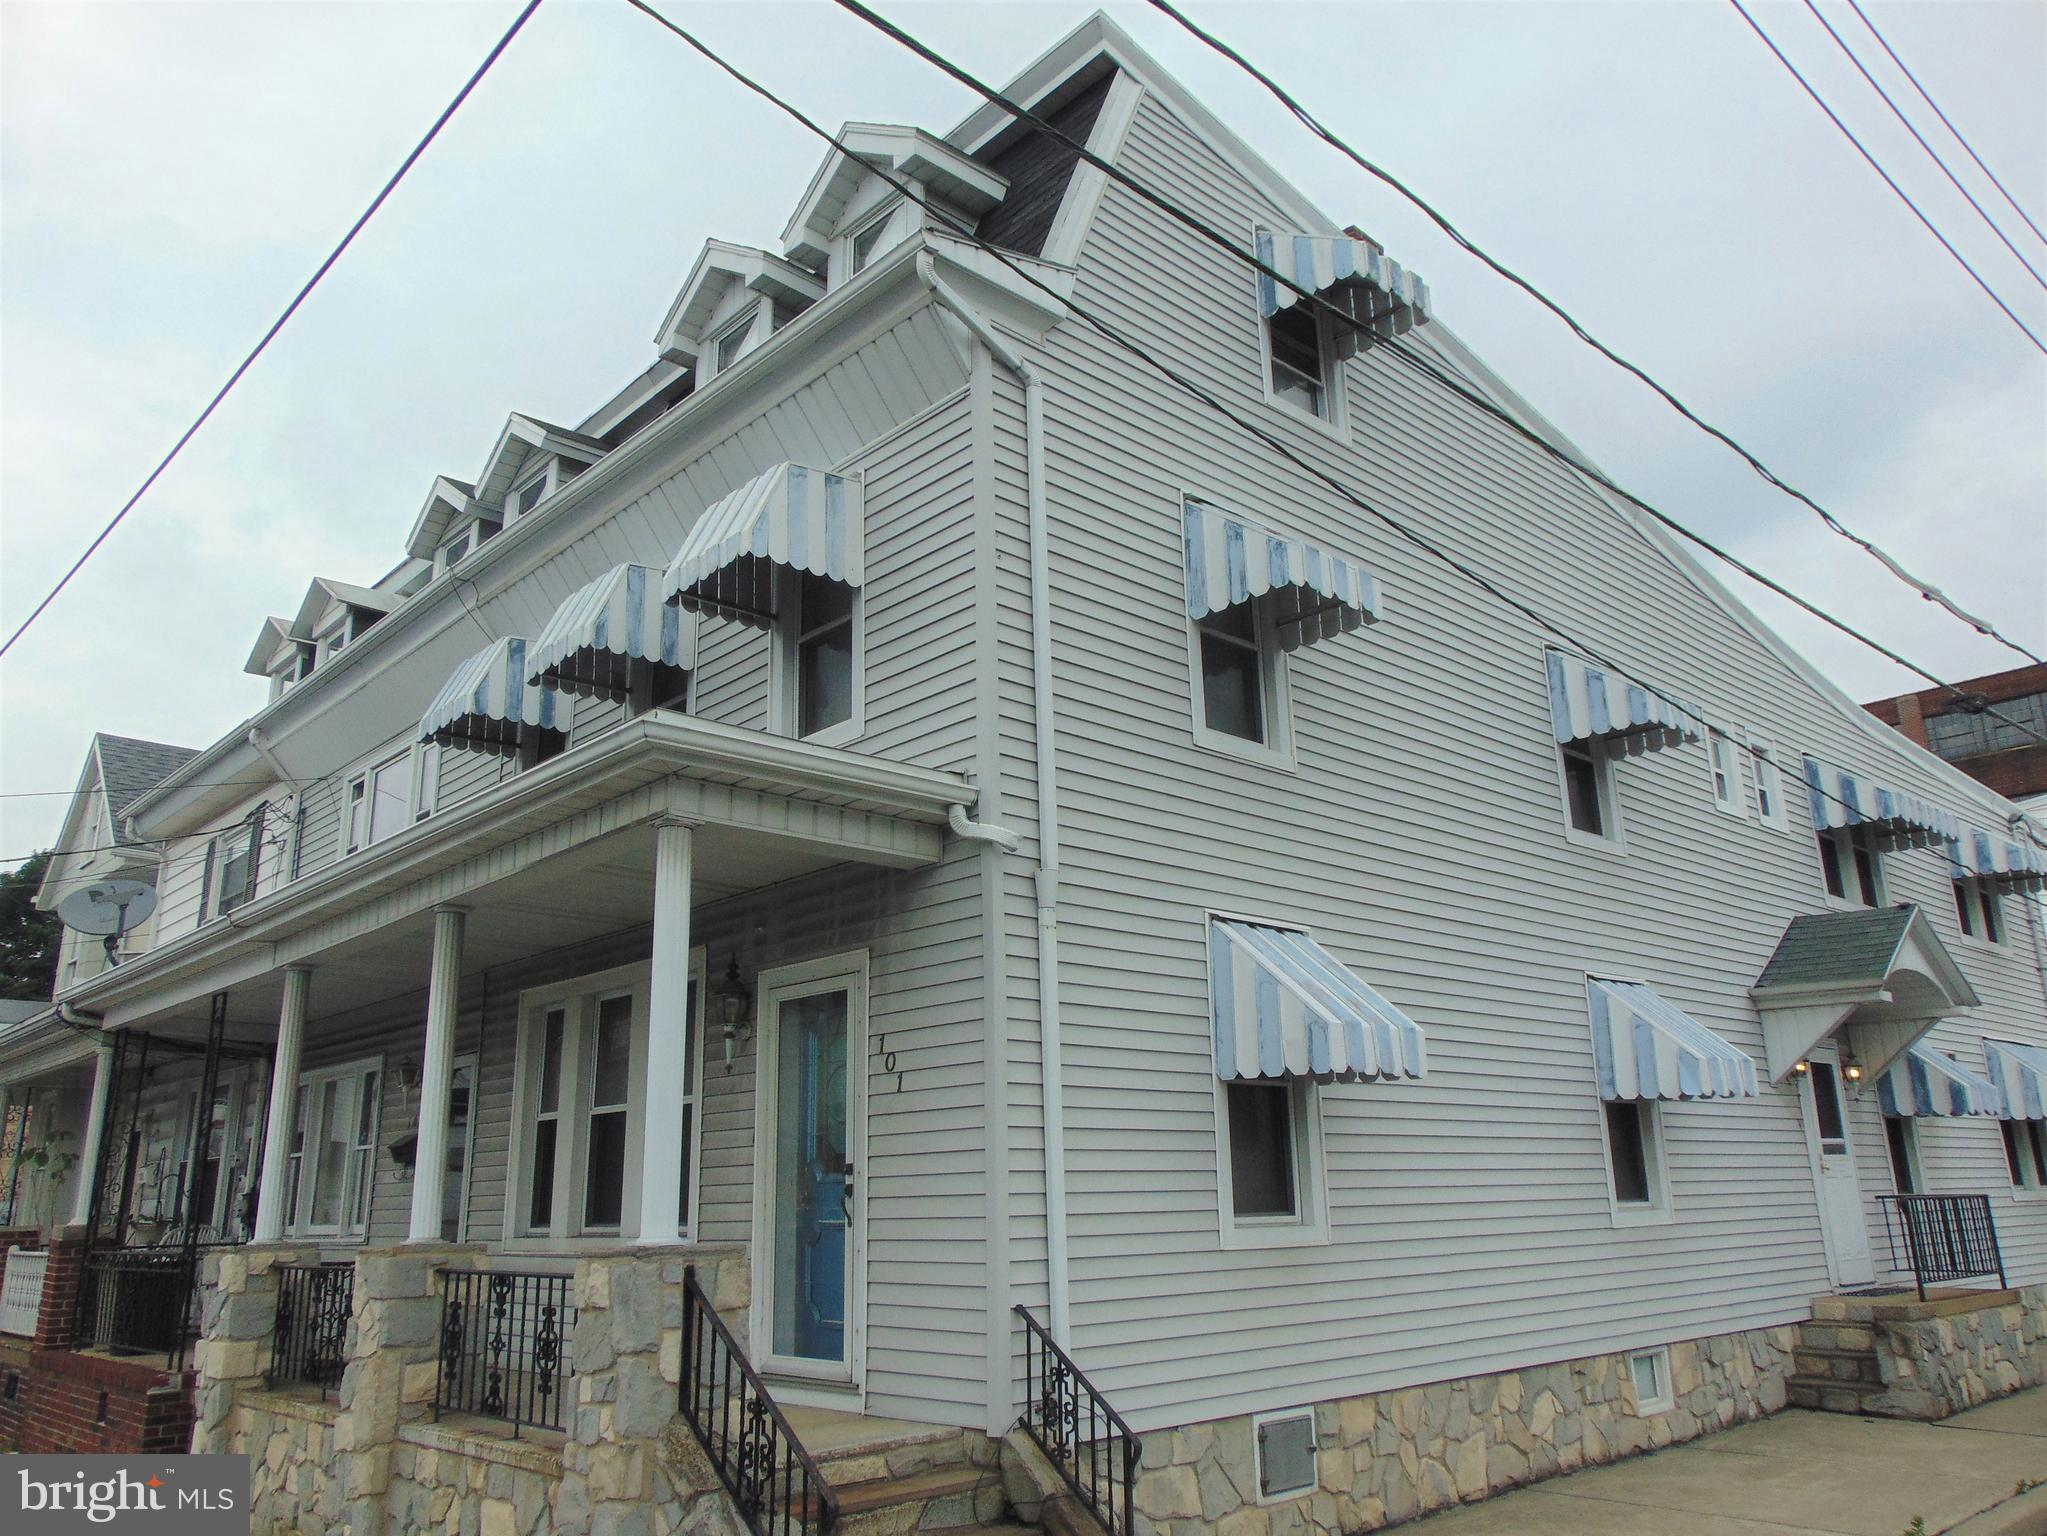 101 N FRONT, MINERSVILLE, PA 17954